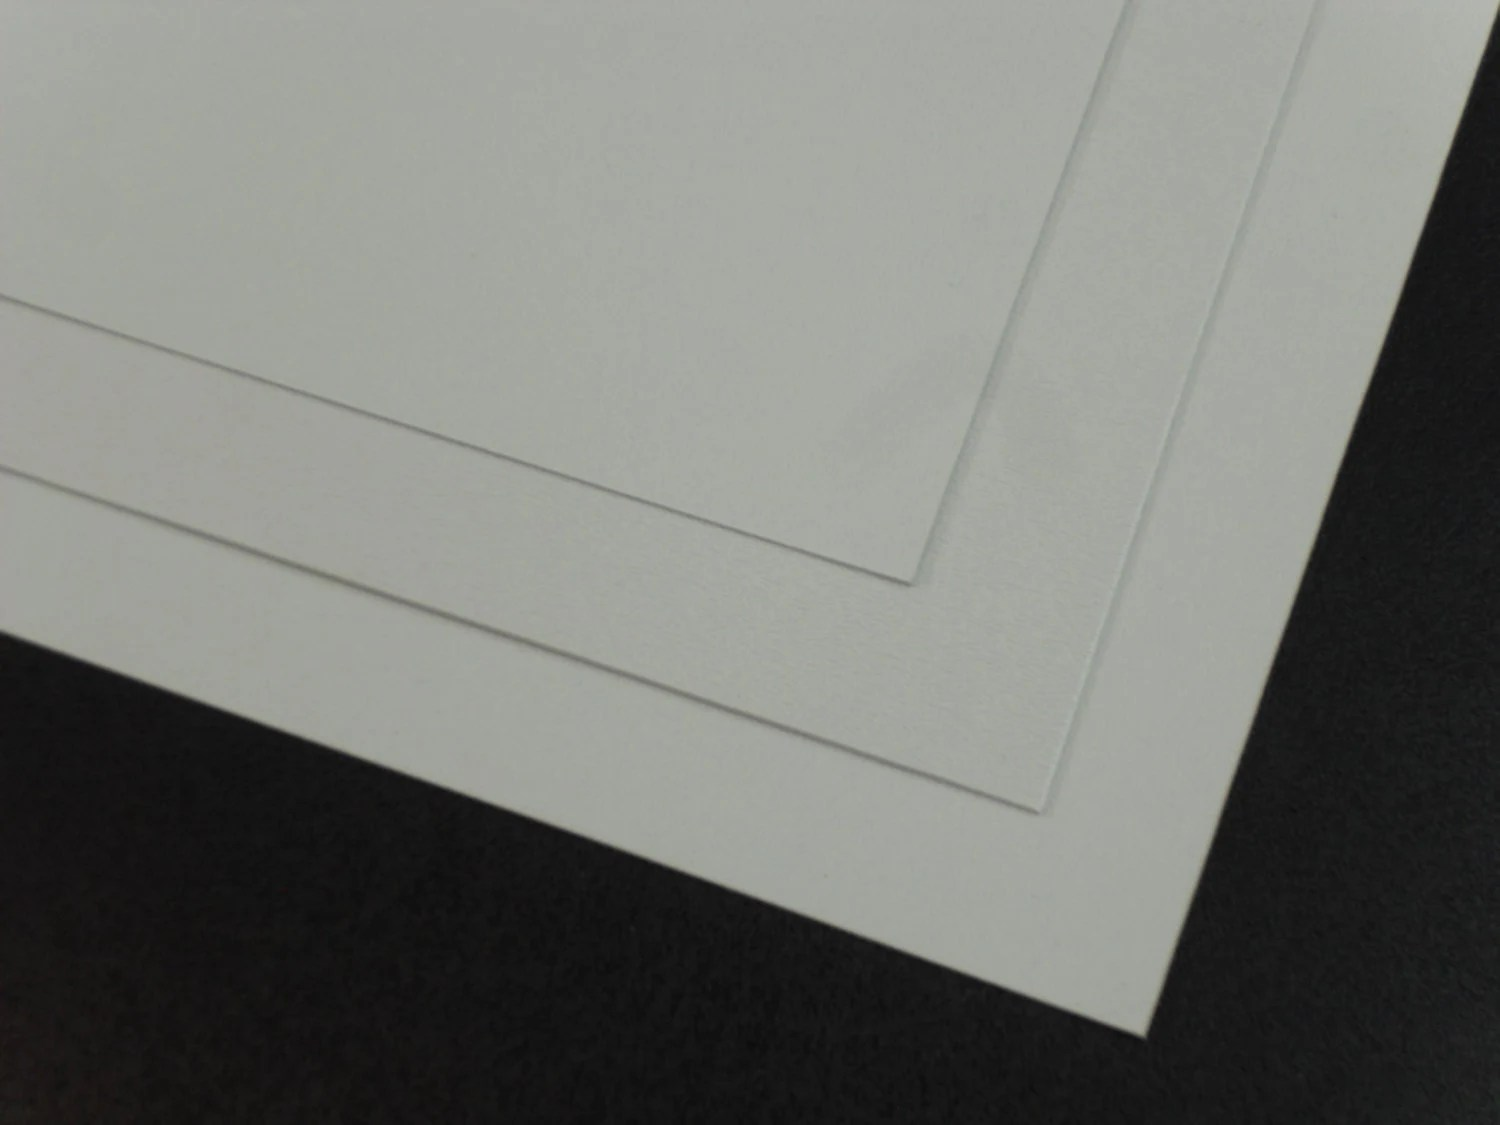 1 Large White Abs Plastic Sheet 24x24x1 8 0 125